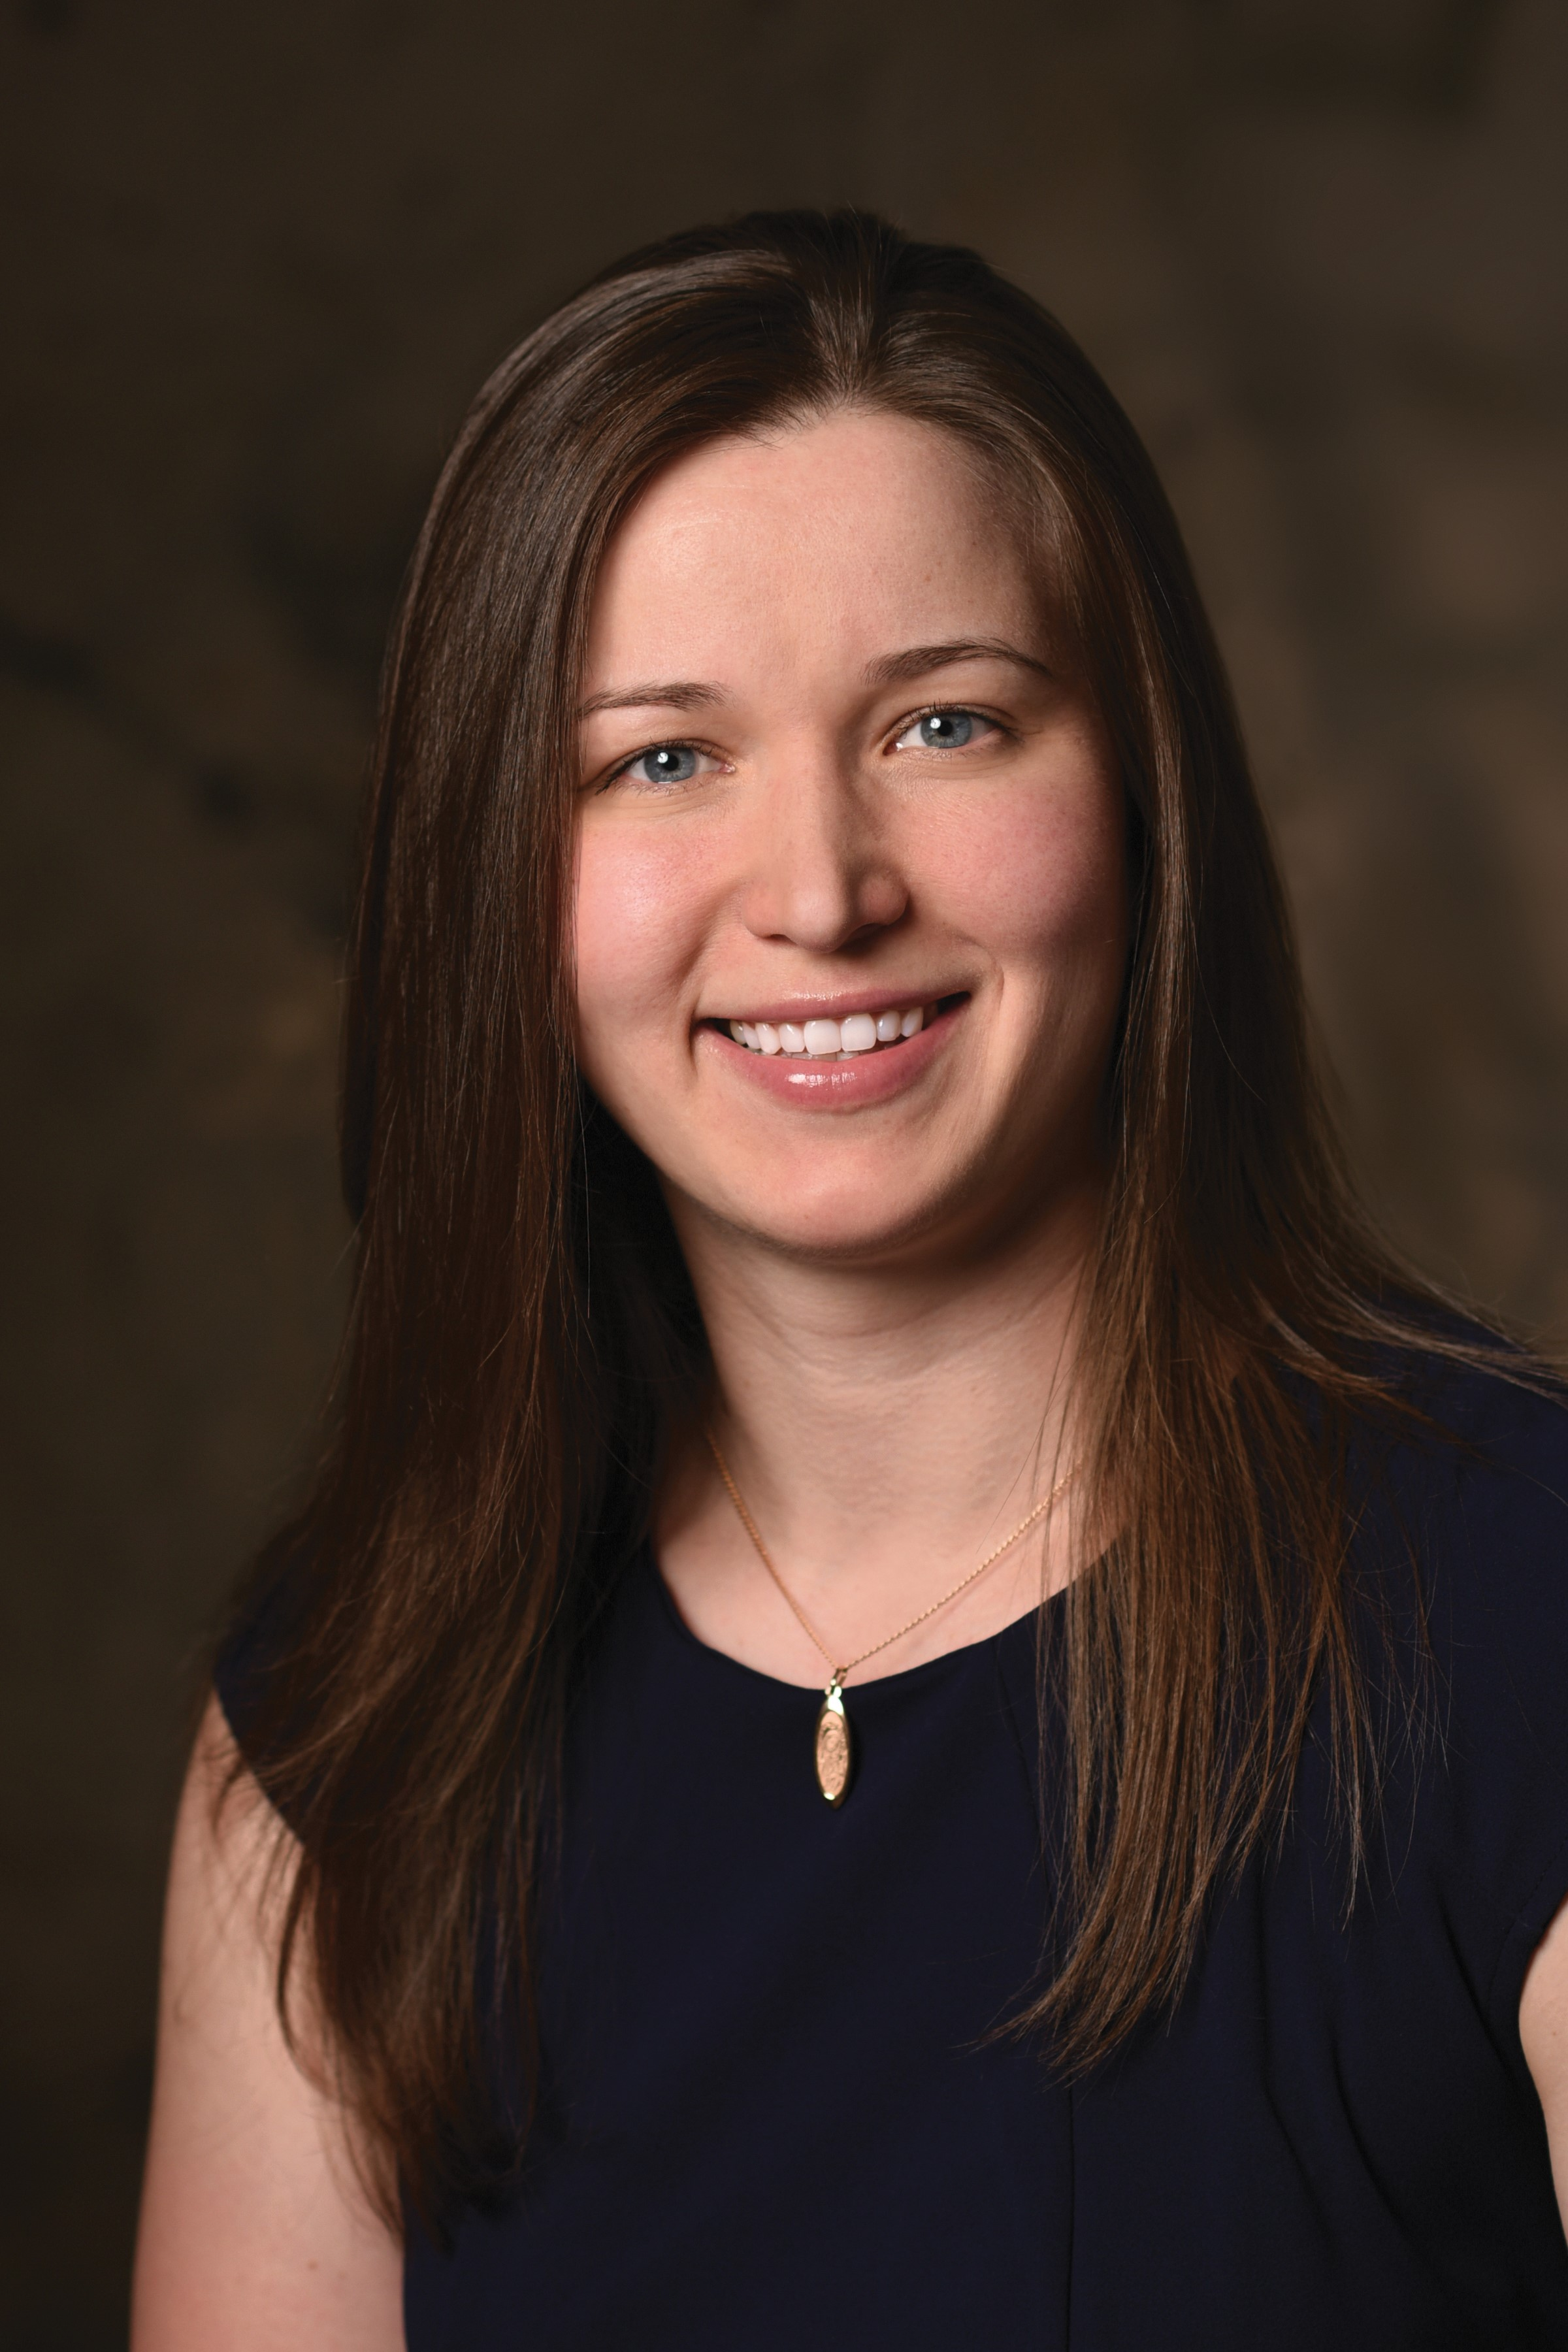 Madison Medical welcomes OB/GYN Katya Frantskevich, M.D. to its team of reputable physicians